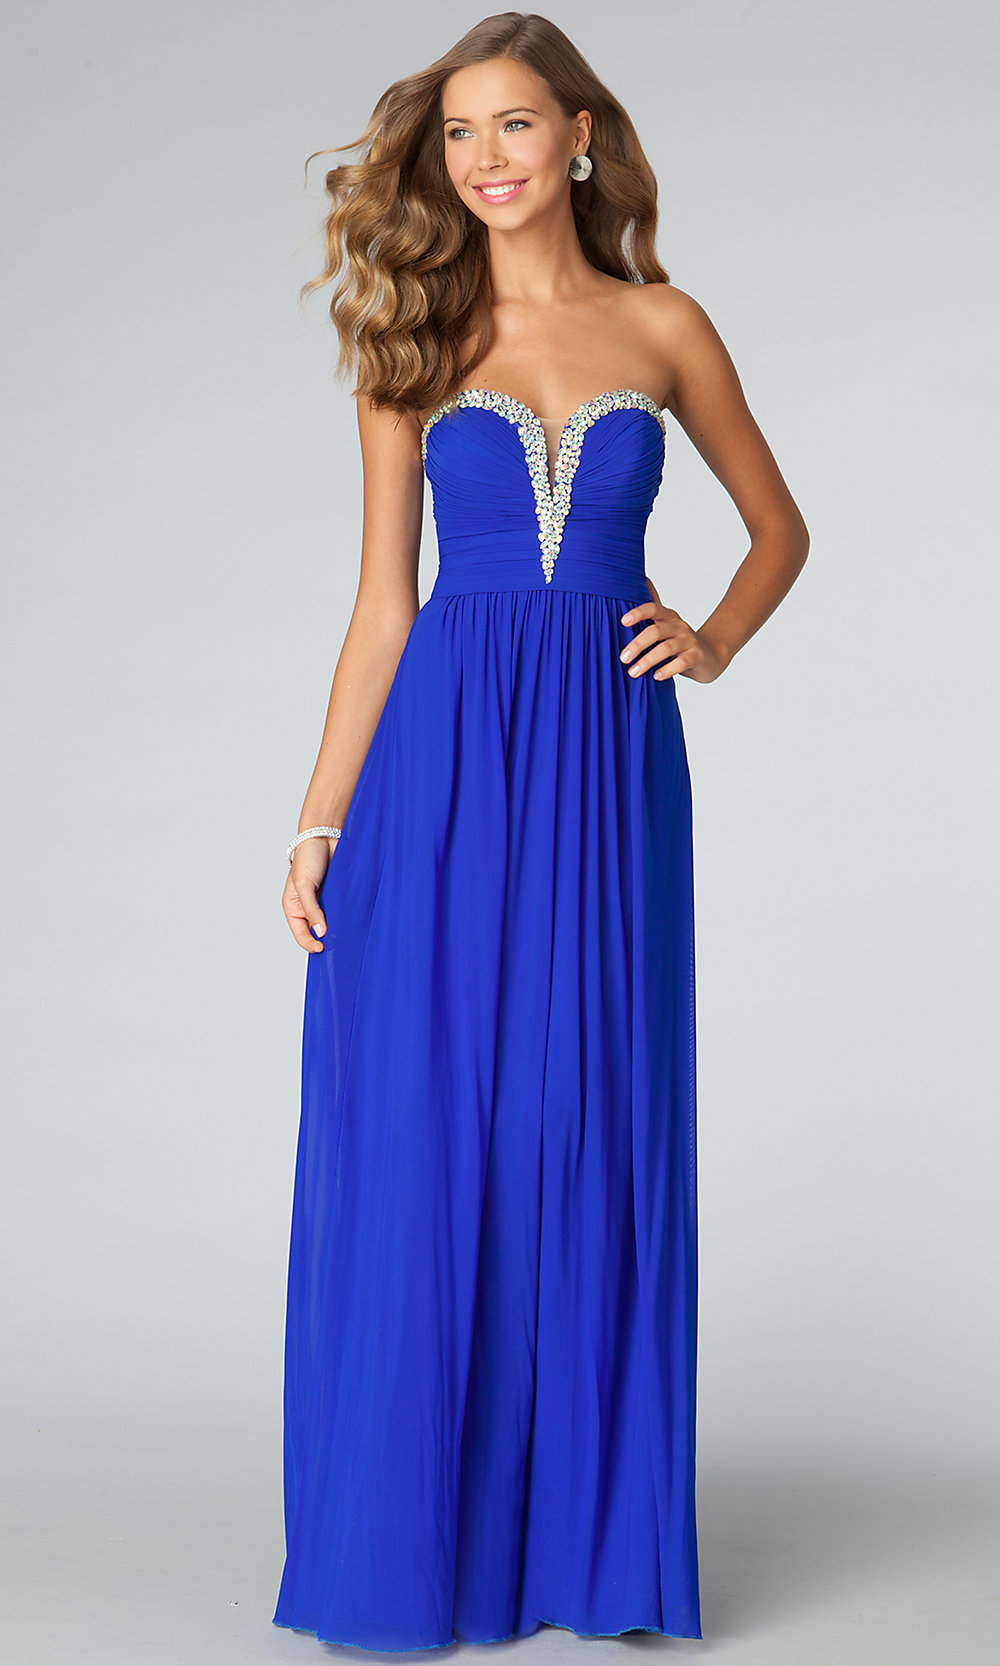 Beaded Strapless JVN by Jovani Prom Gown- PromGirl